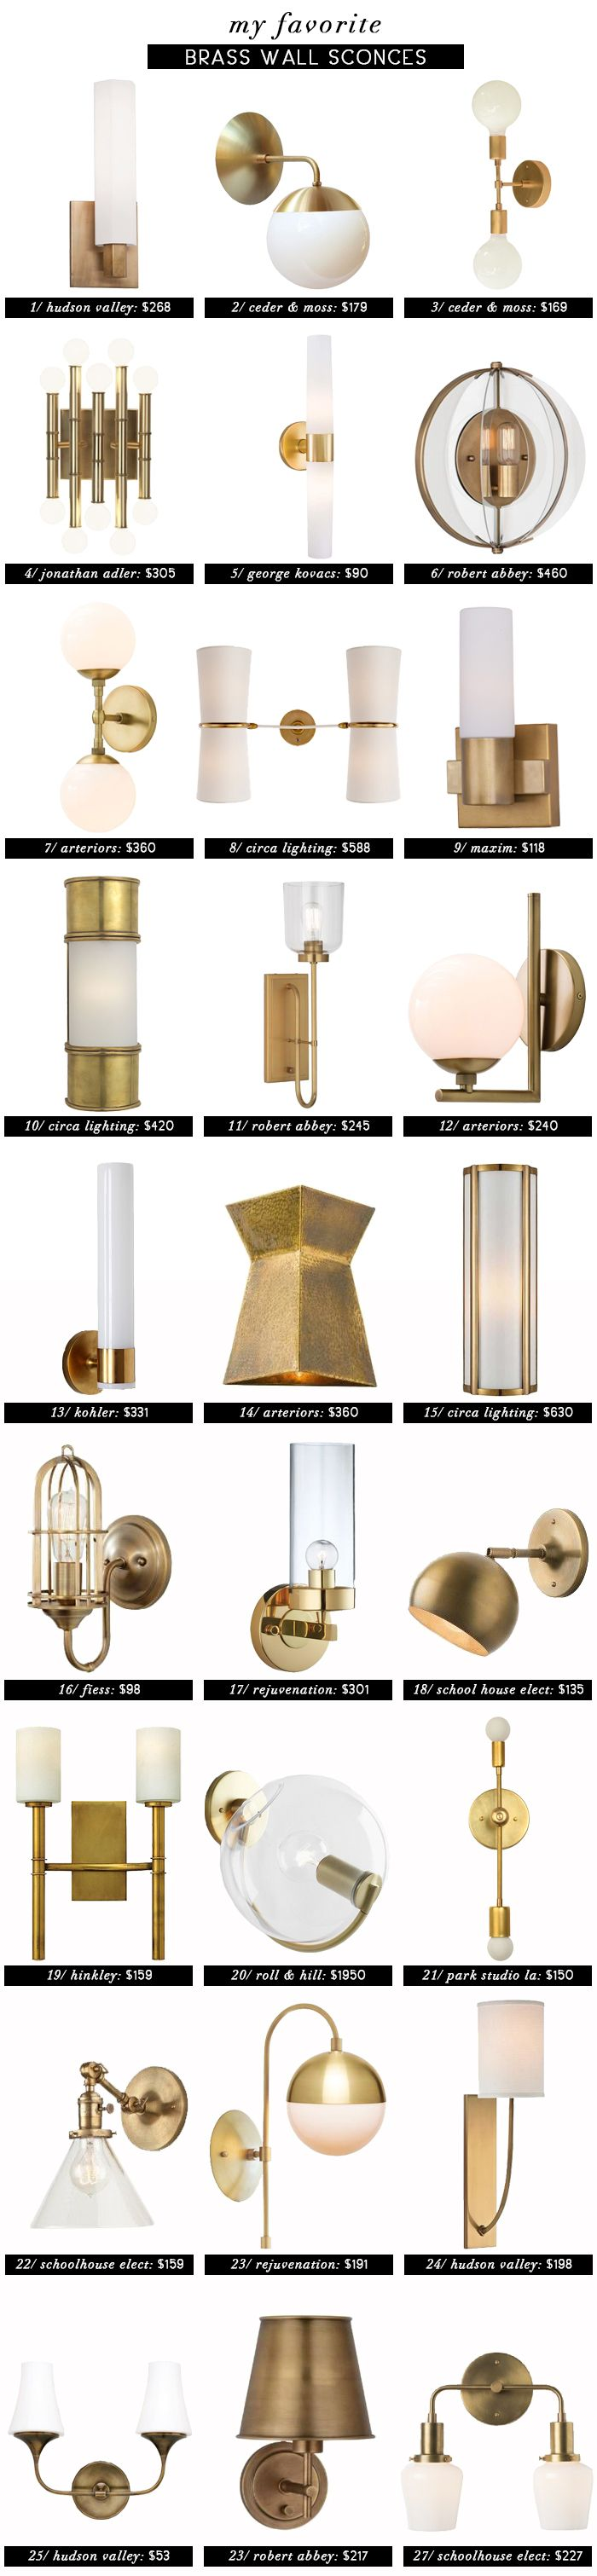 Best 10 Brass bathroom sconce ideas on Pinterest